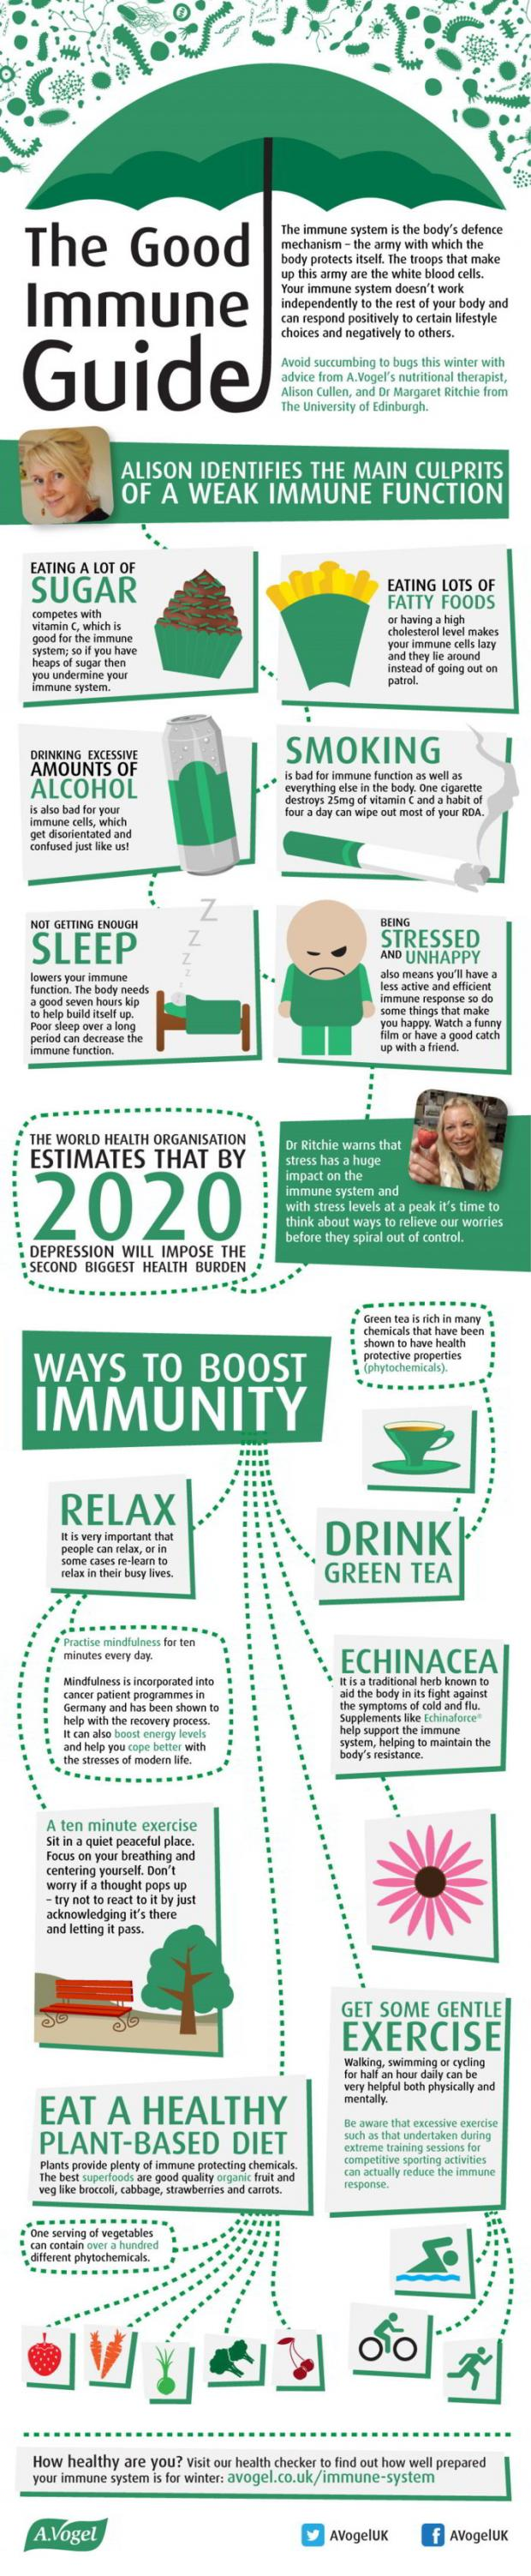 The Good Immune Guide